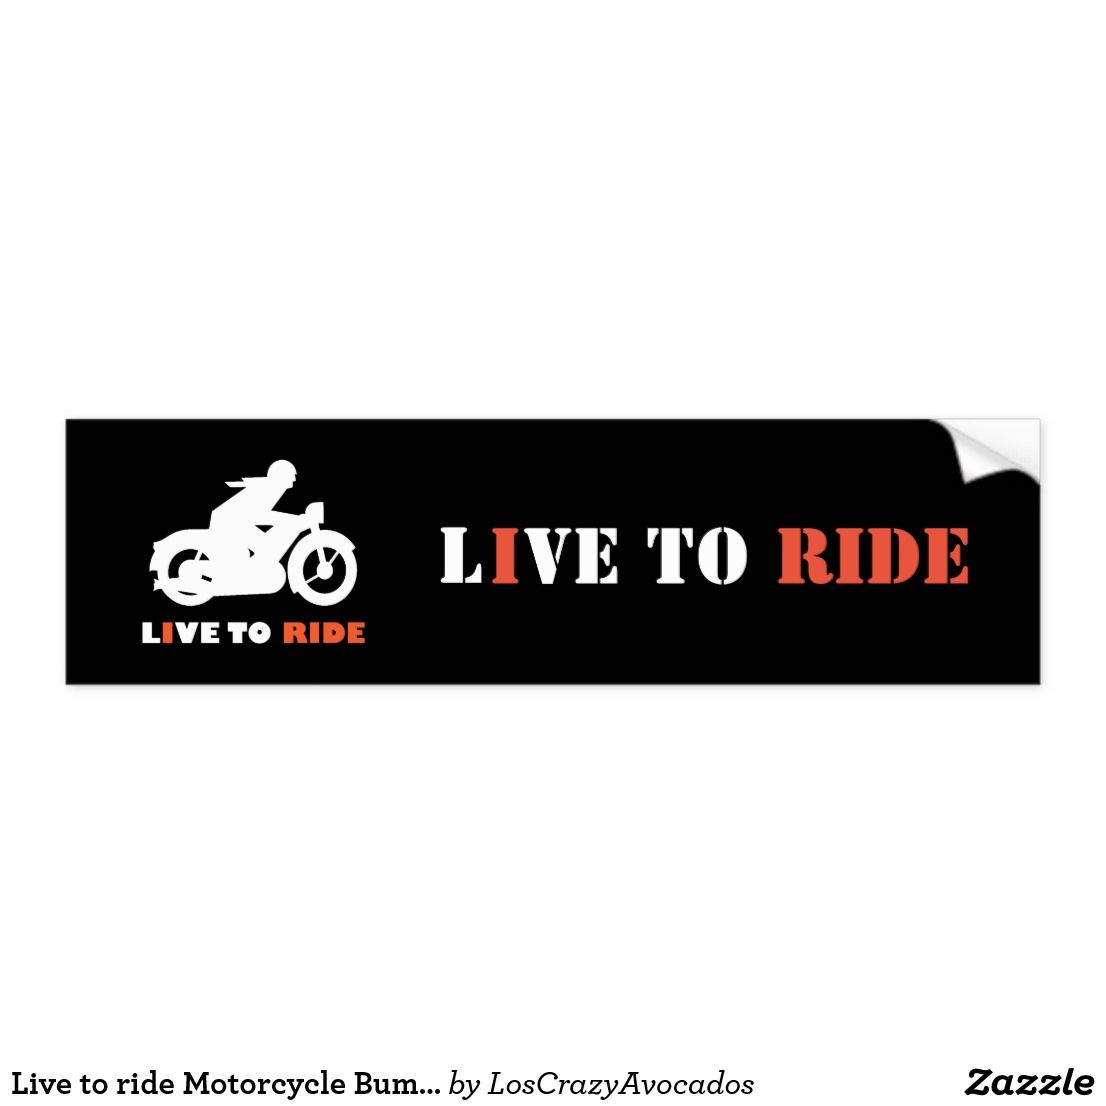 Live To Ride Motorcycle Bumper Sticker Ride Bike Biker Motorcycle Sticker Motorbike Funky Gift Cool Road Car Bumper Stickers Bumpers Car Magnets [ 1106 x 1106 Pixel ]